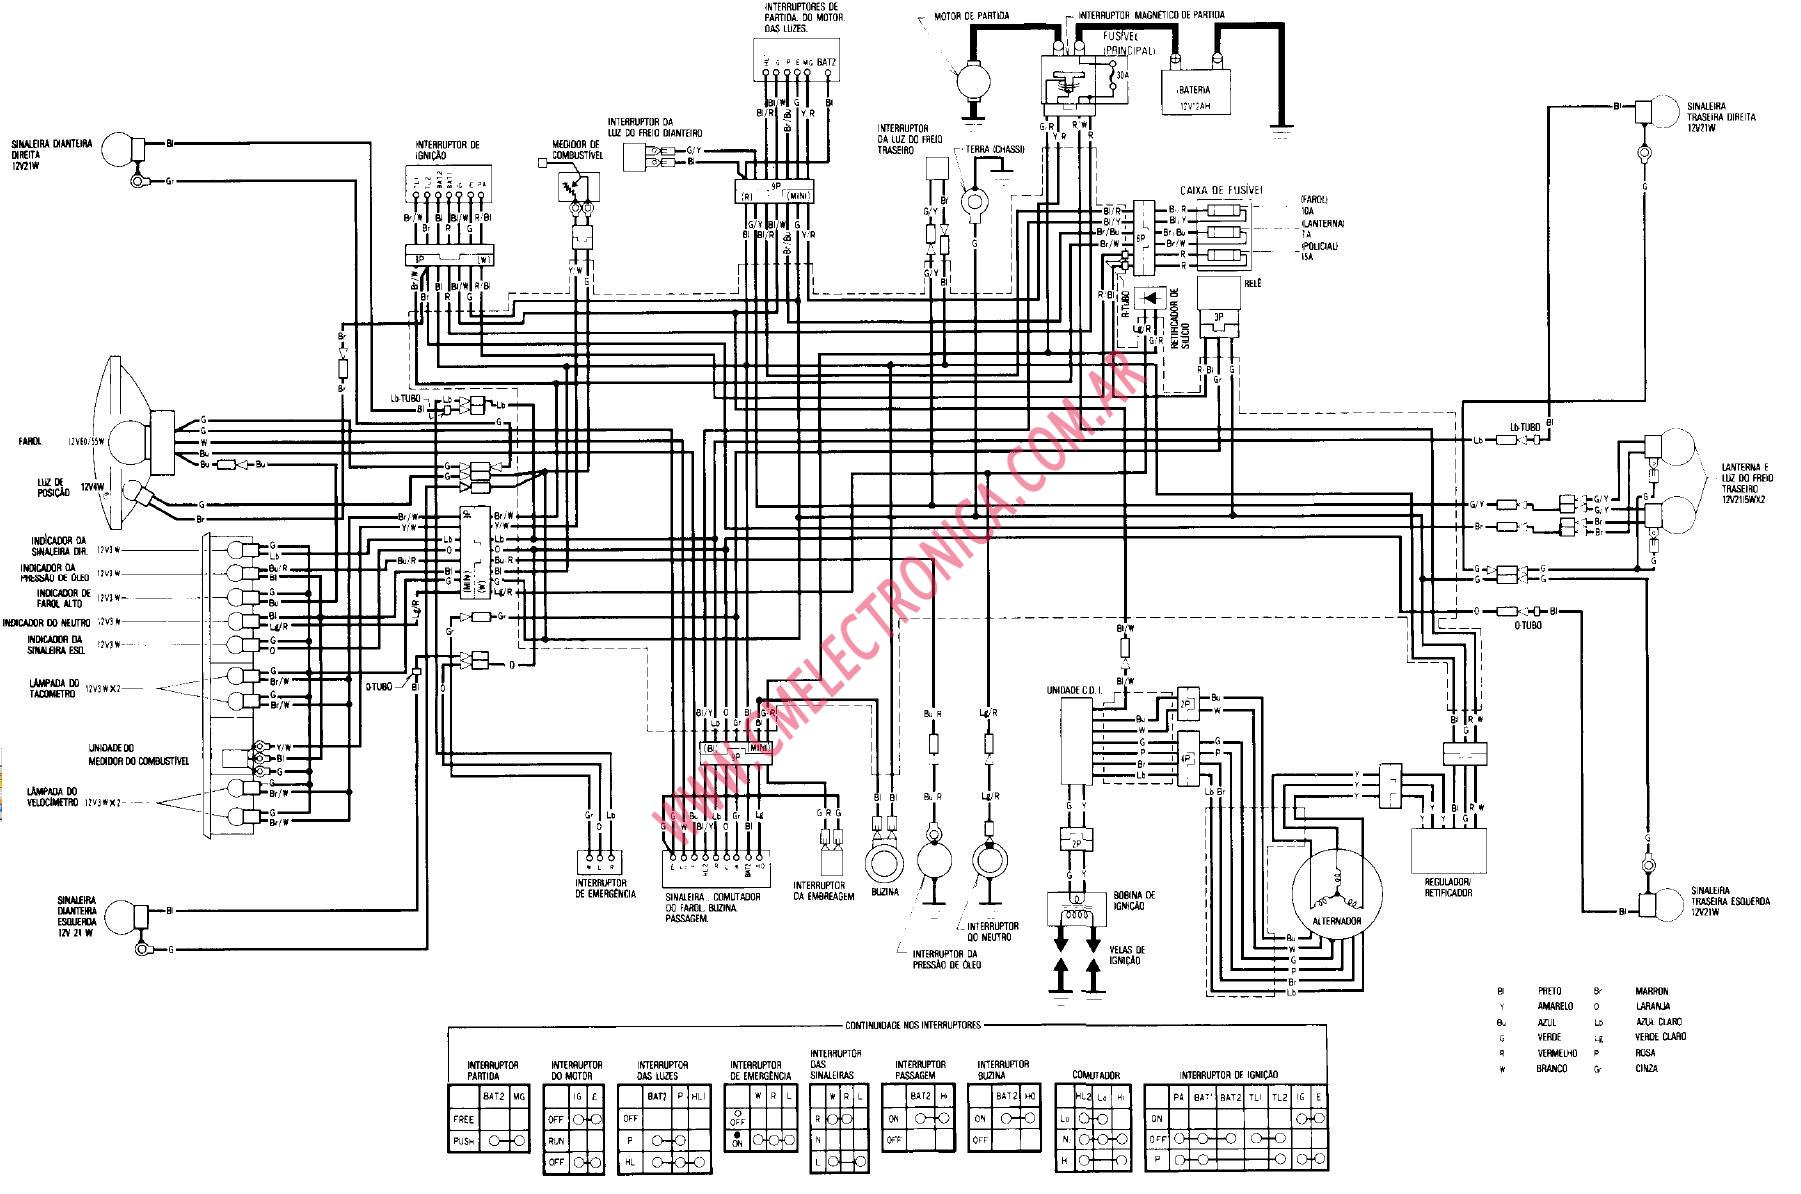 Wiring Diagram For Gsxr 750, Wiring, Free Engine Image For